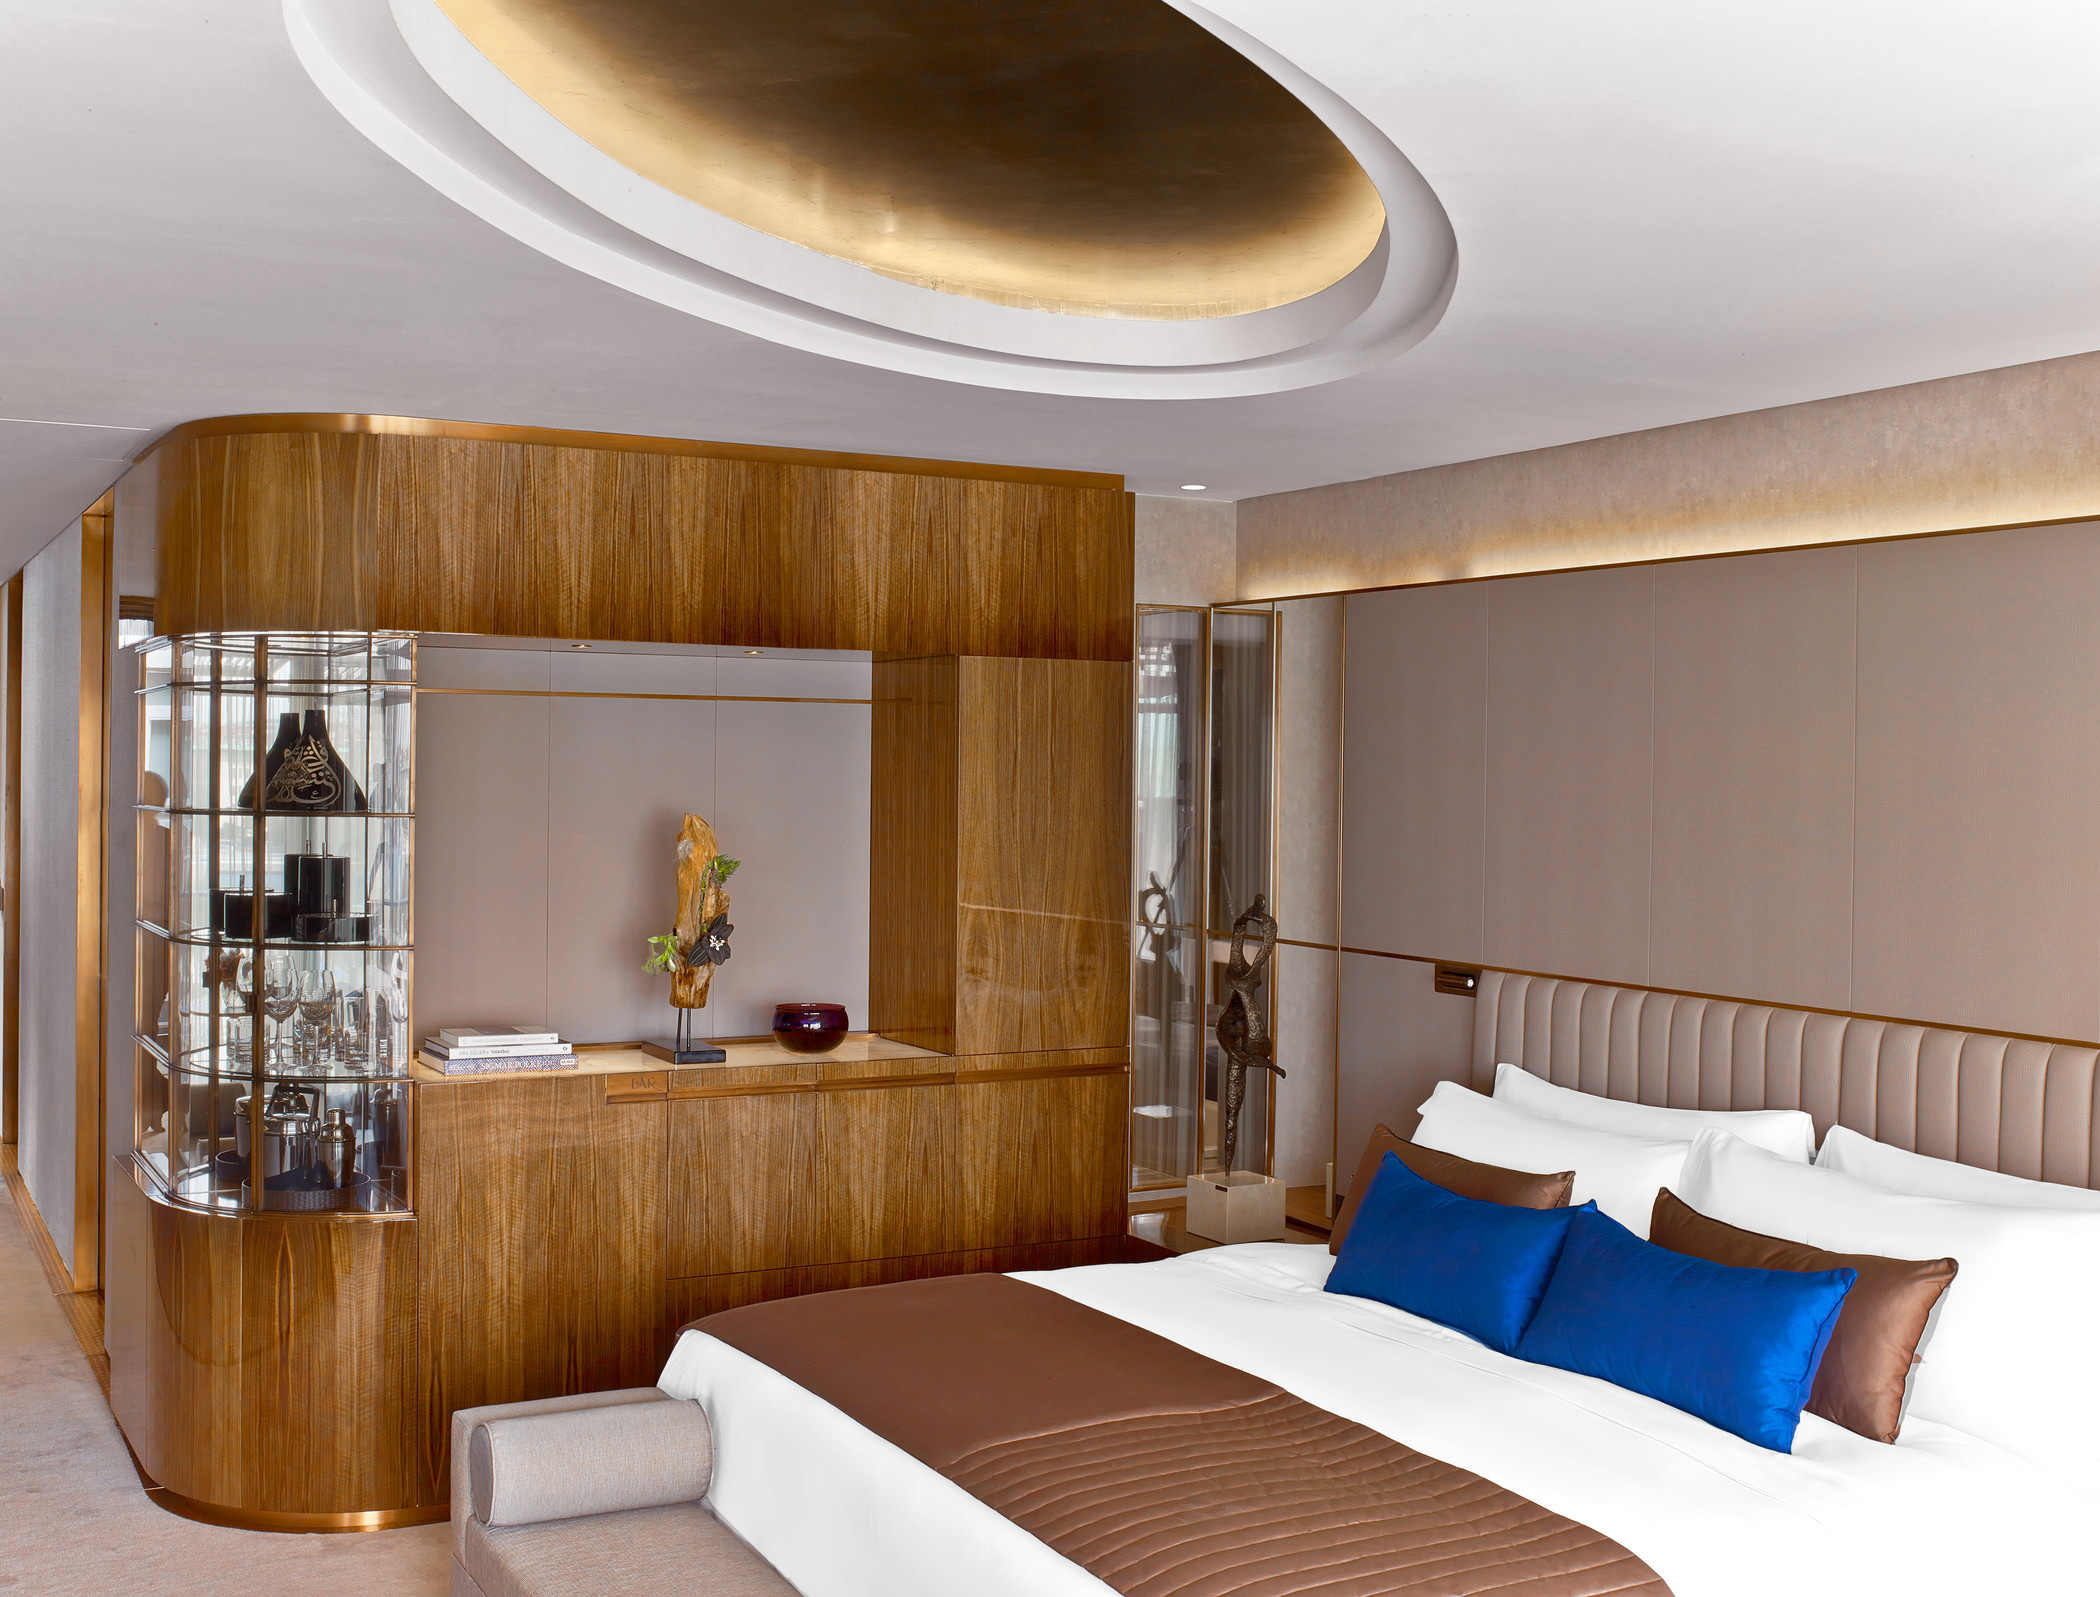 St regis hotels resorts to debut in turkey with a for Decor hotel istanbul